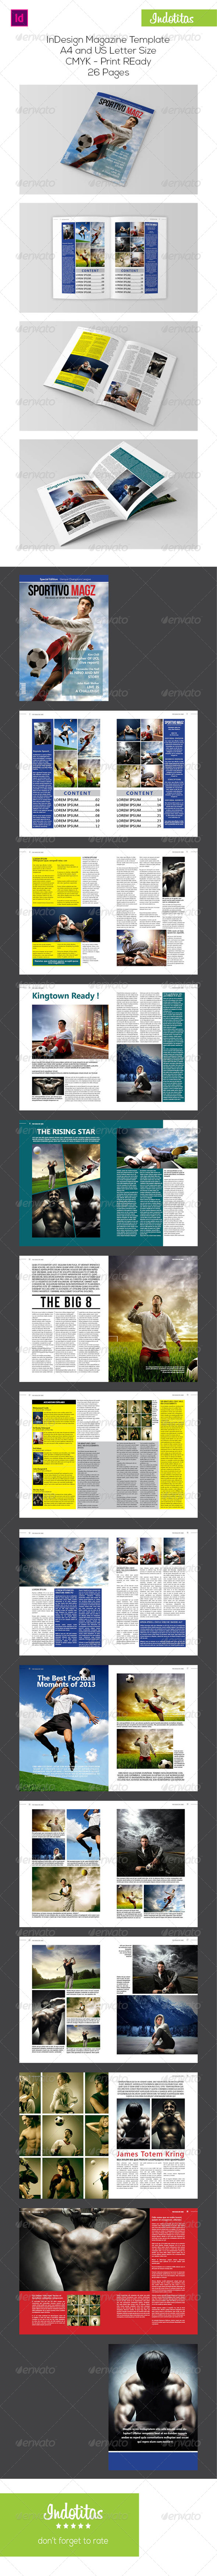 GraphicRiver Sport InDesign Magazine Template 7308302